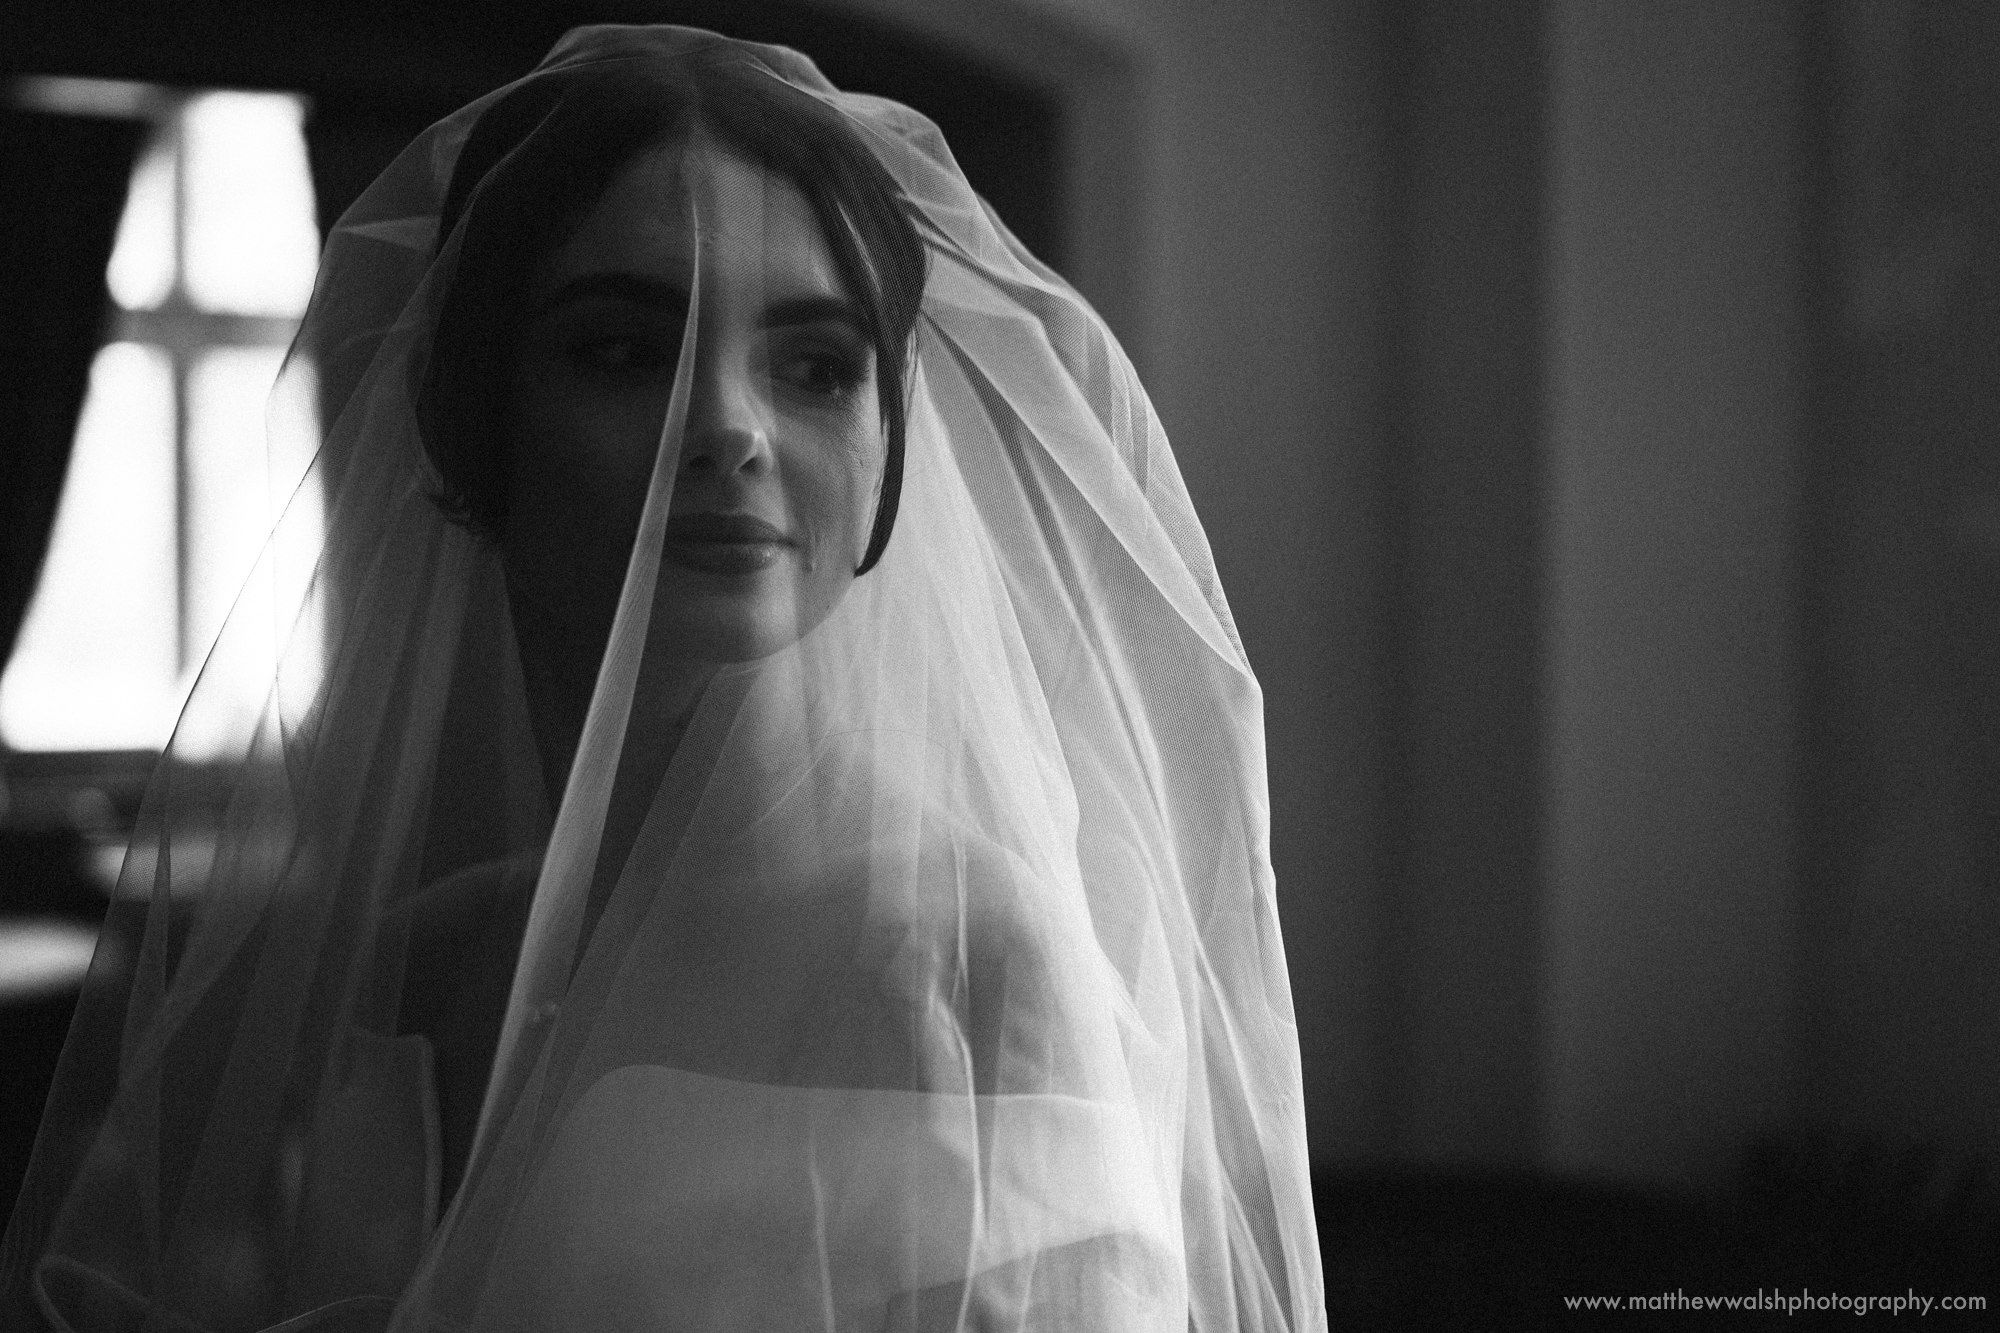 The bride in her veil about to walk down the isle